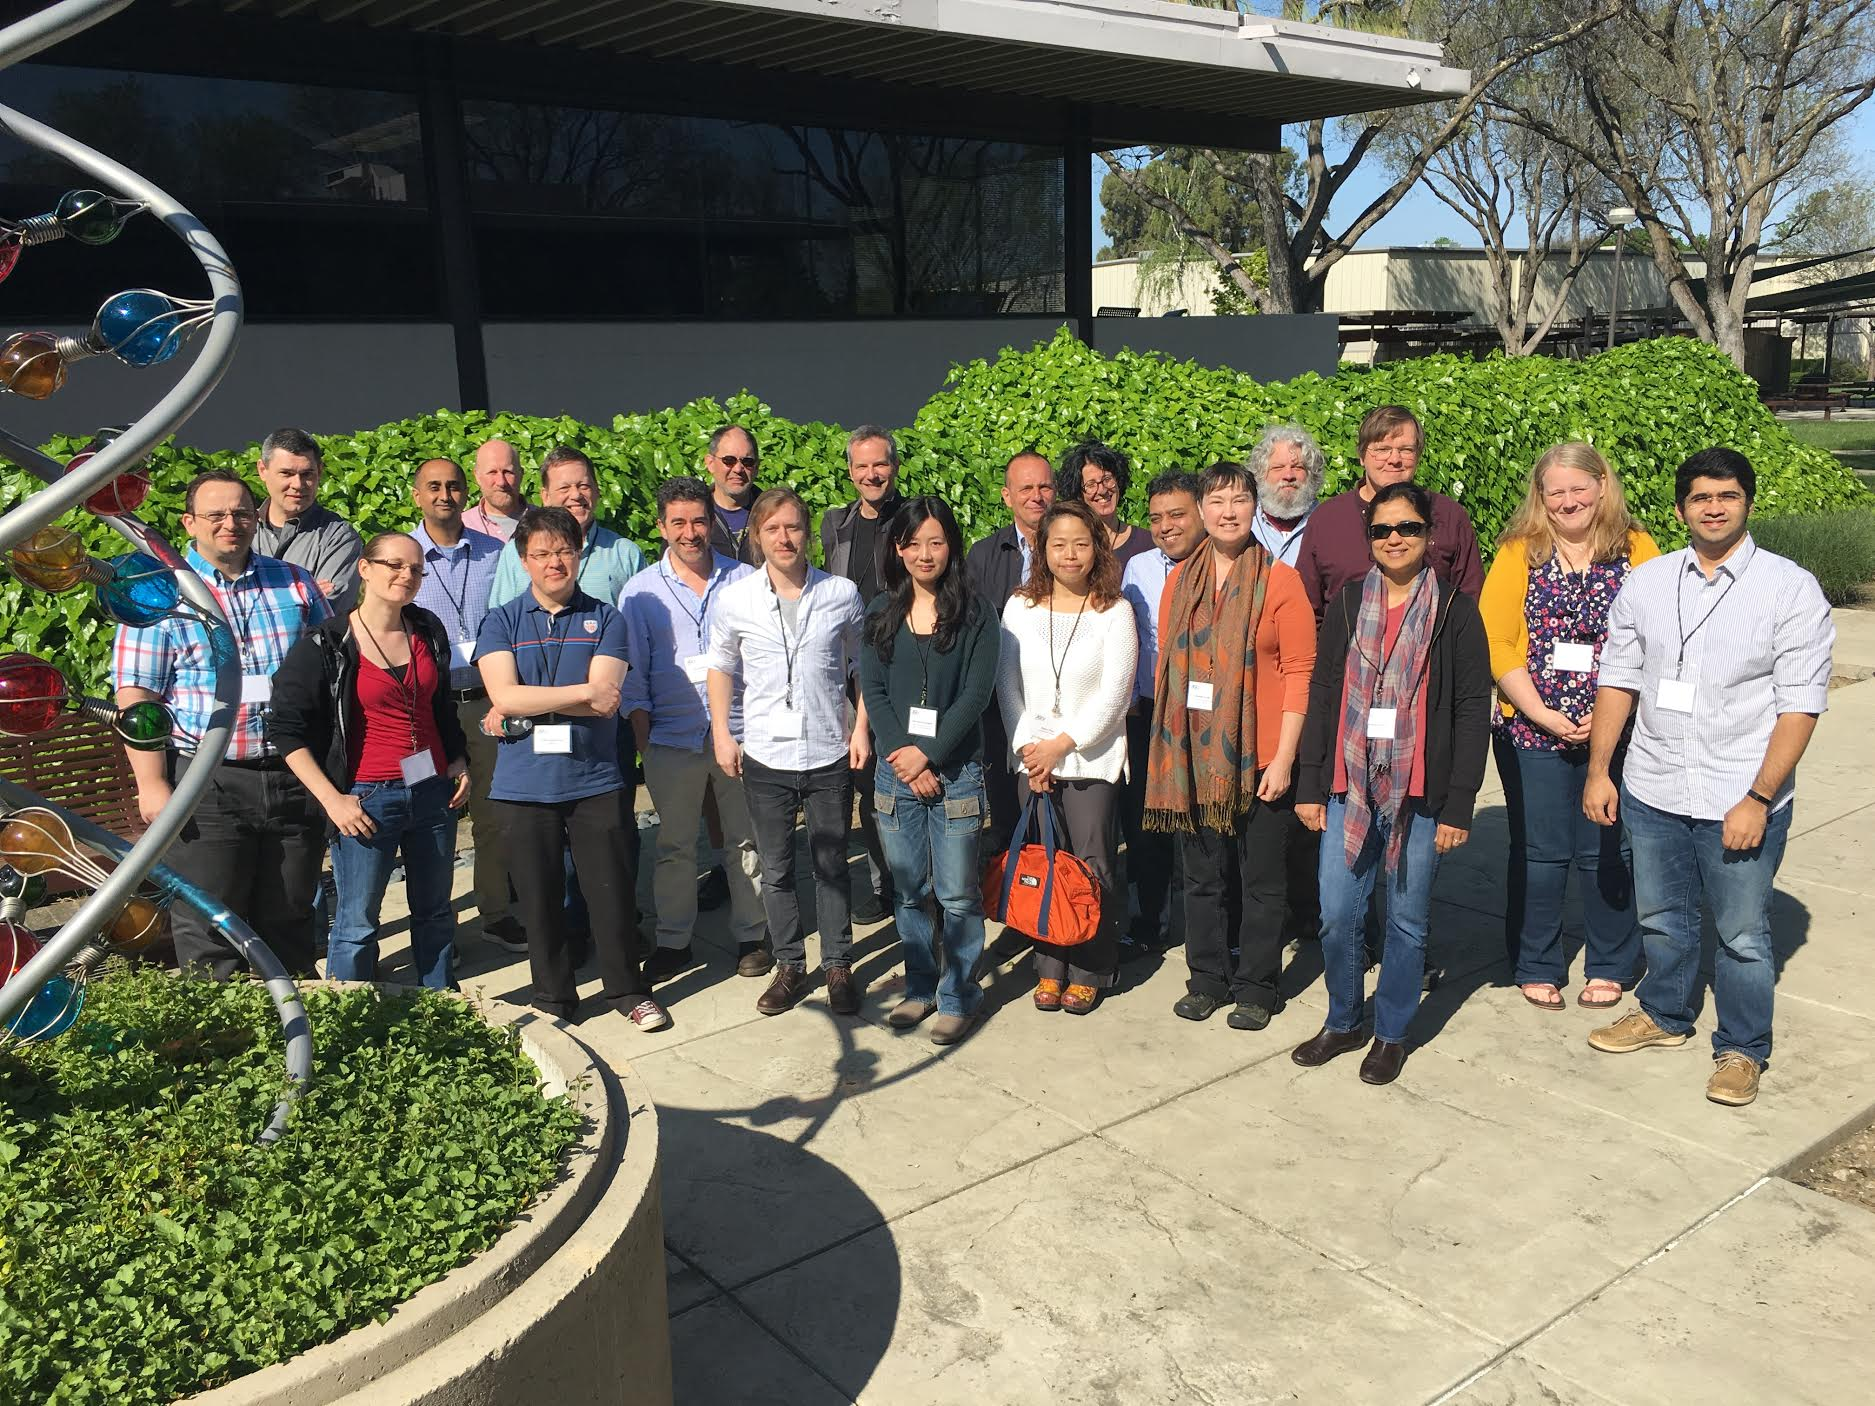 Group photo in the sun at the InterMine conference. Say cheese! 📷 https://t.co/gDXzgEeKGq